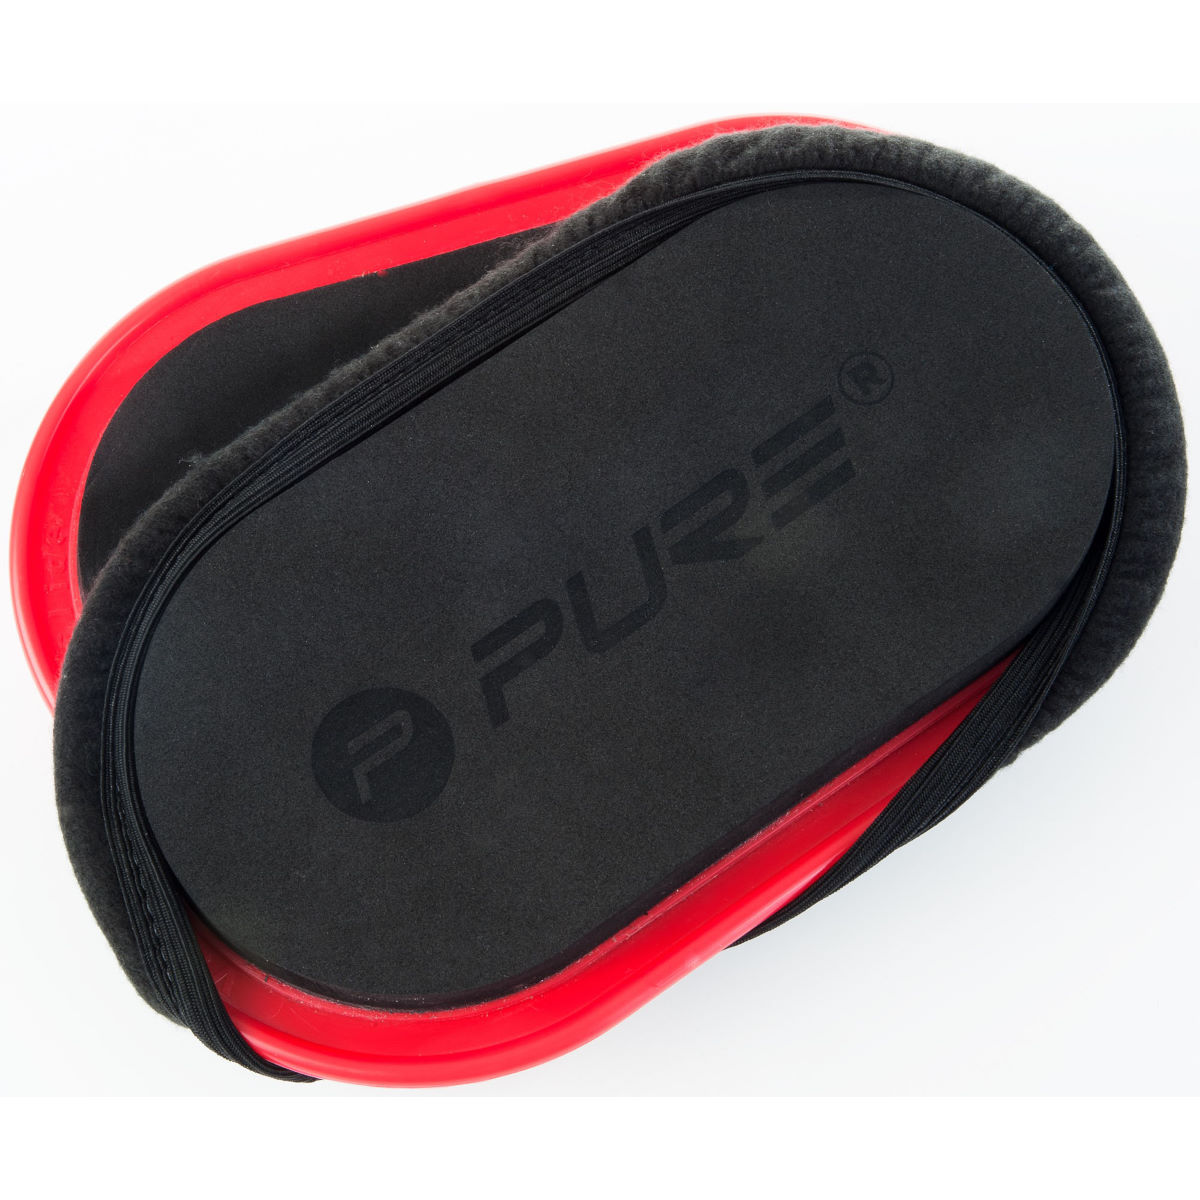 Pure2improve Slide Pads (set Of 2) - One Size Black / Red